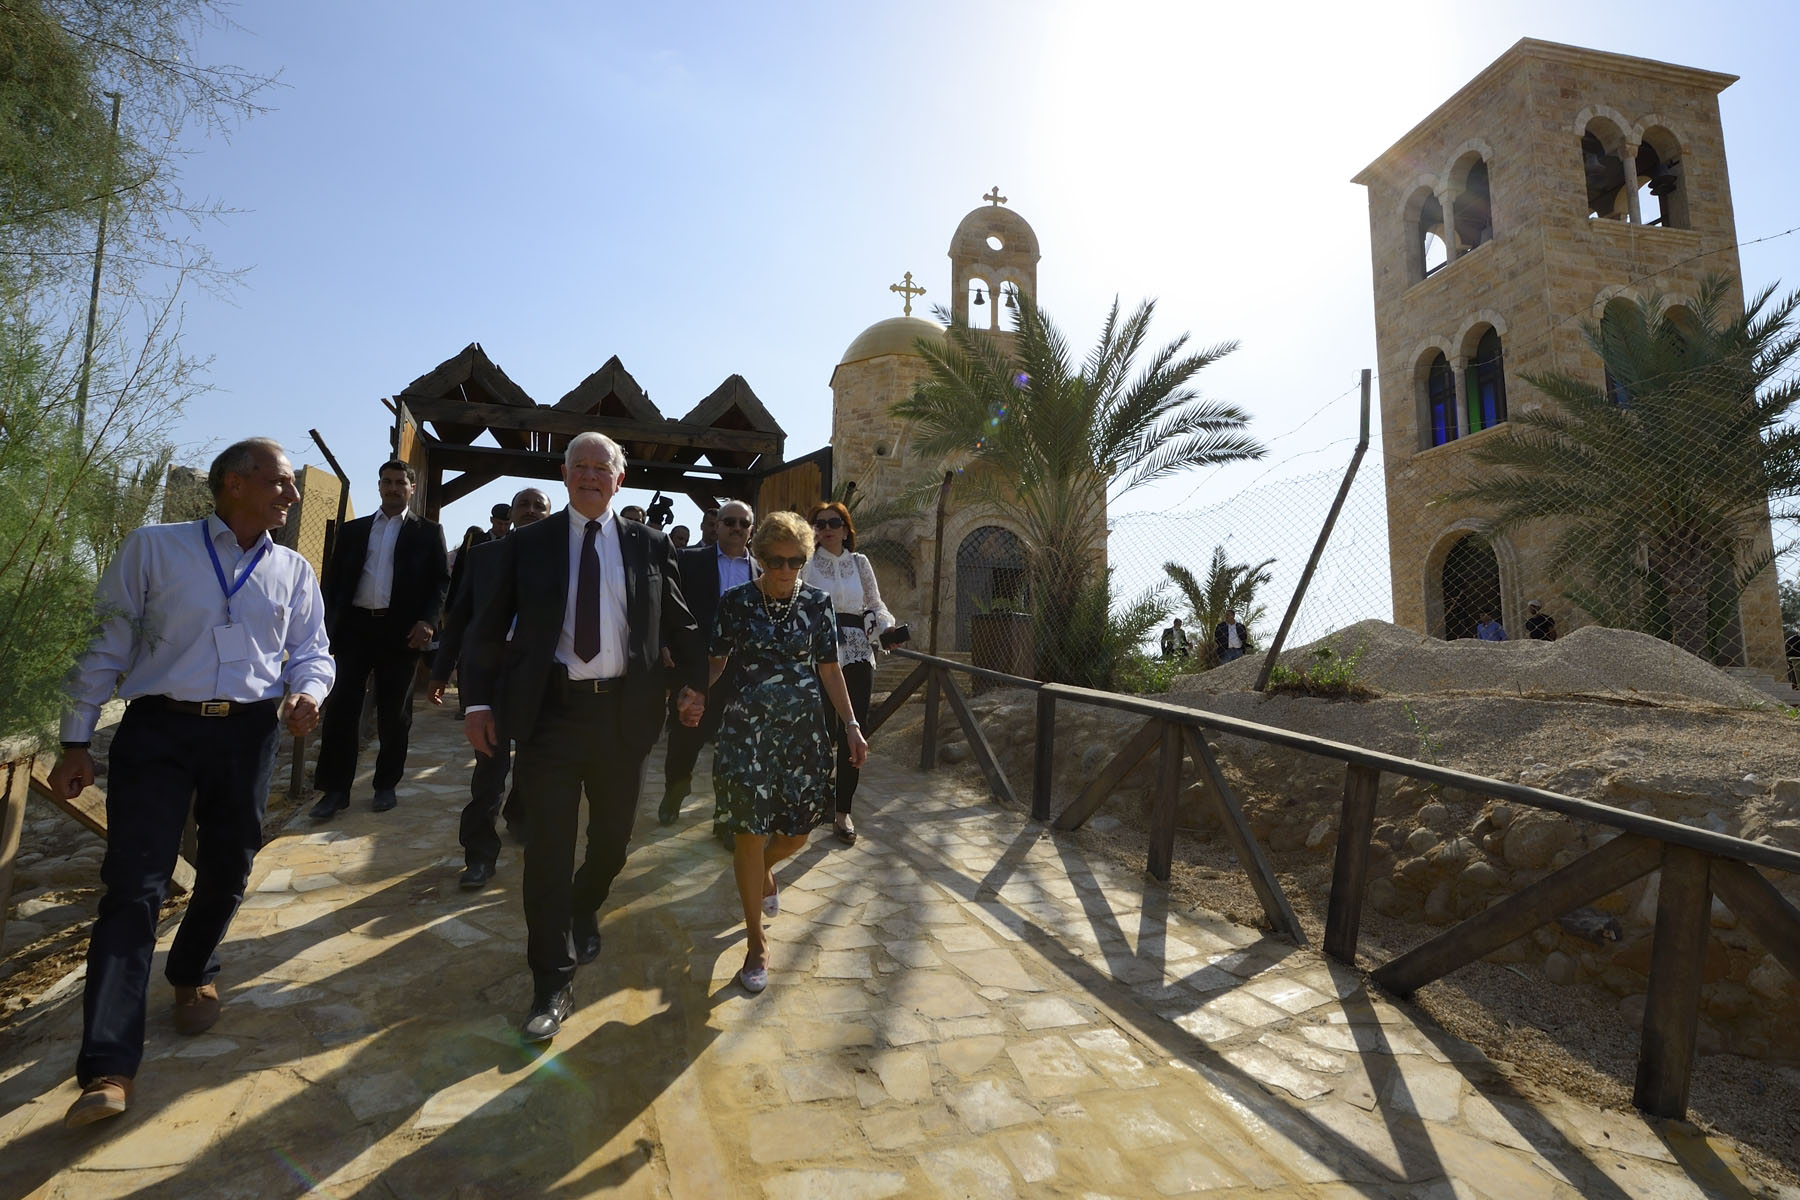 On their last day in Jordan, Their Excellencies visited the Baptism Site of Jesus Christ, also known as 'Bethany Beyond the Jordan'.